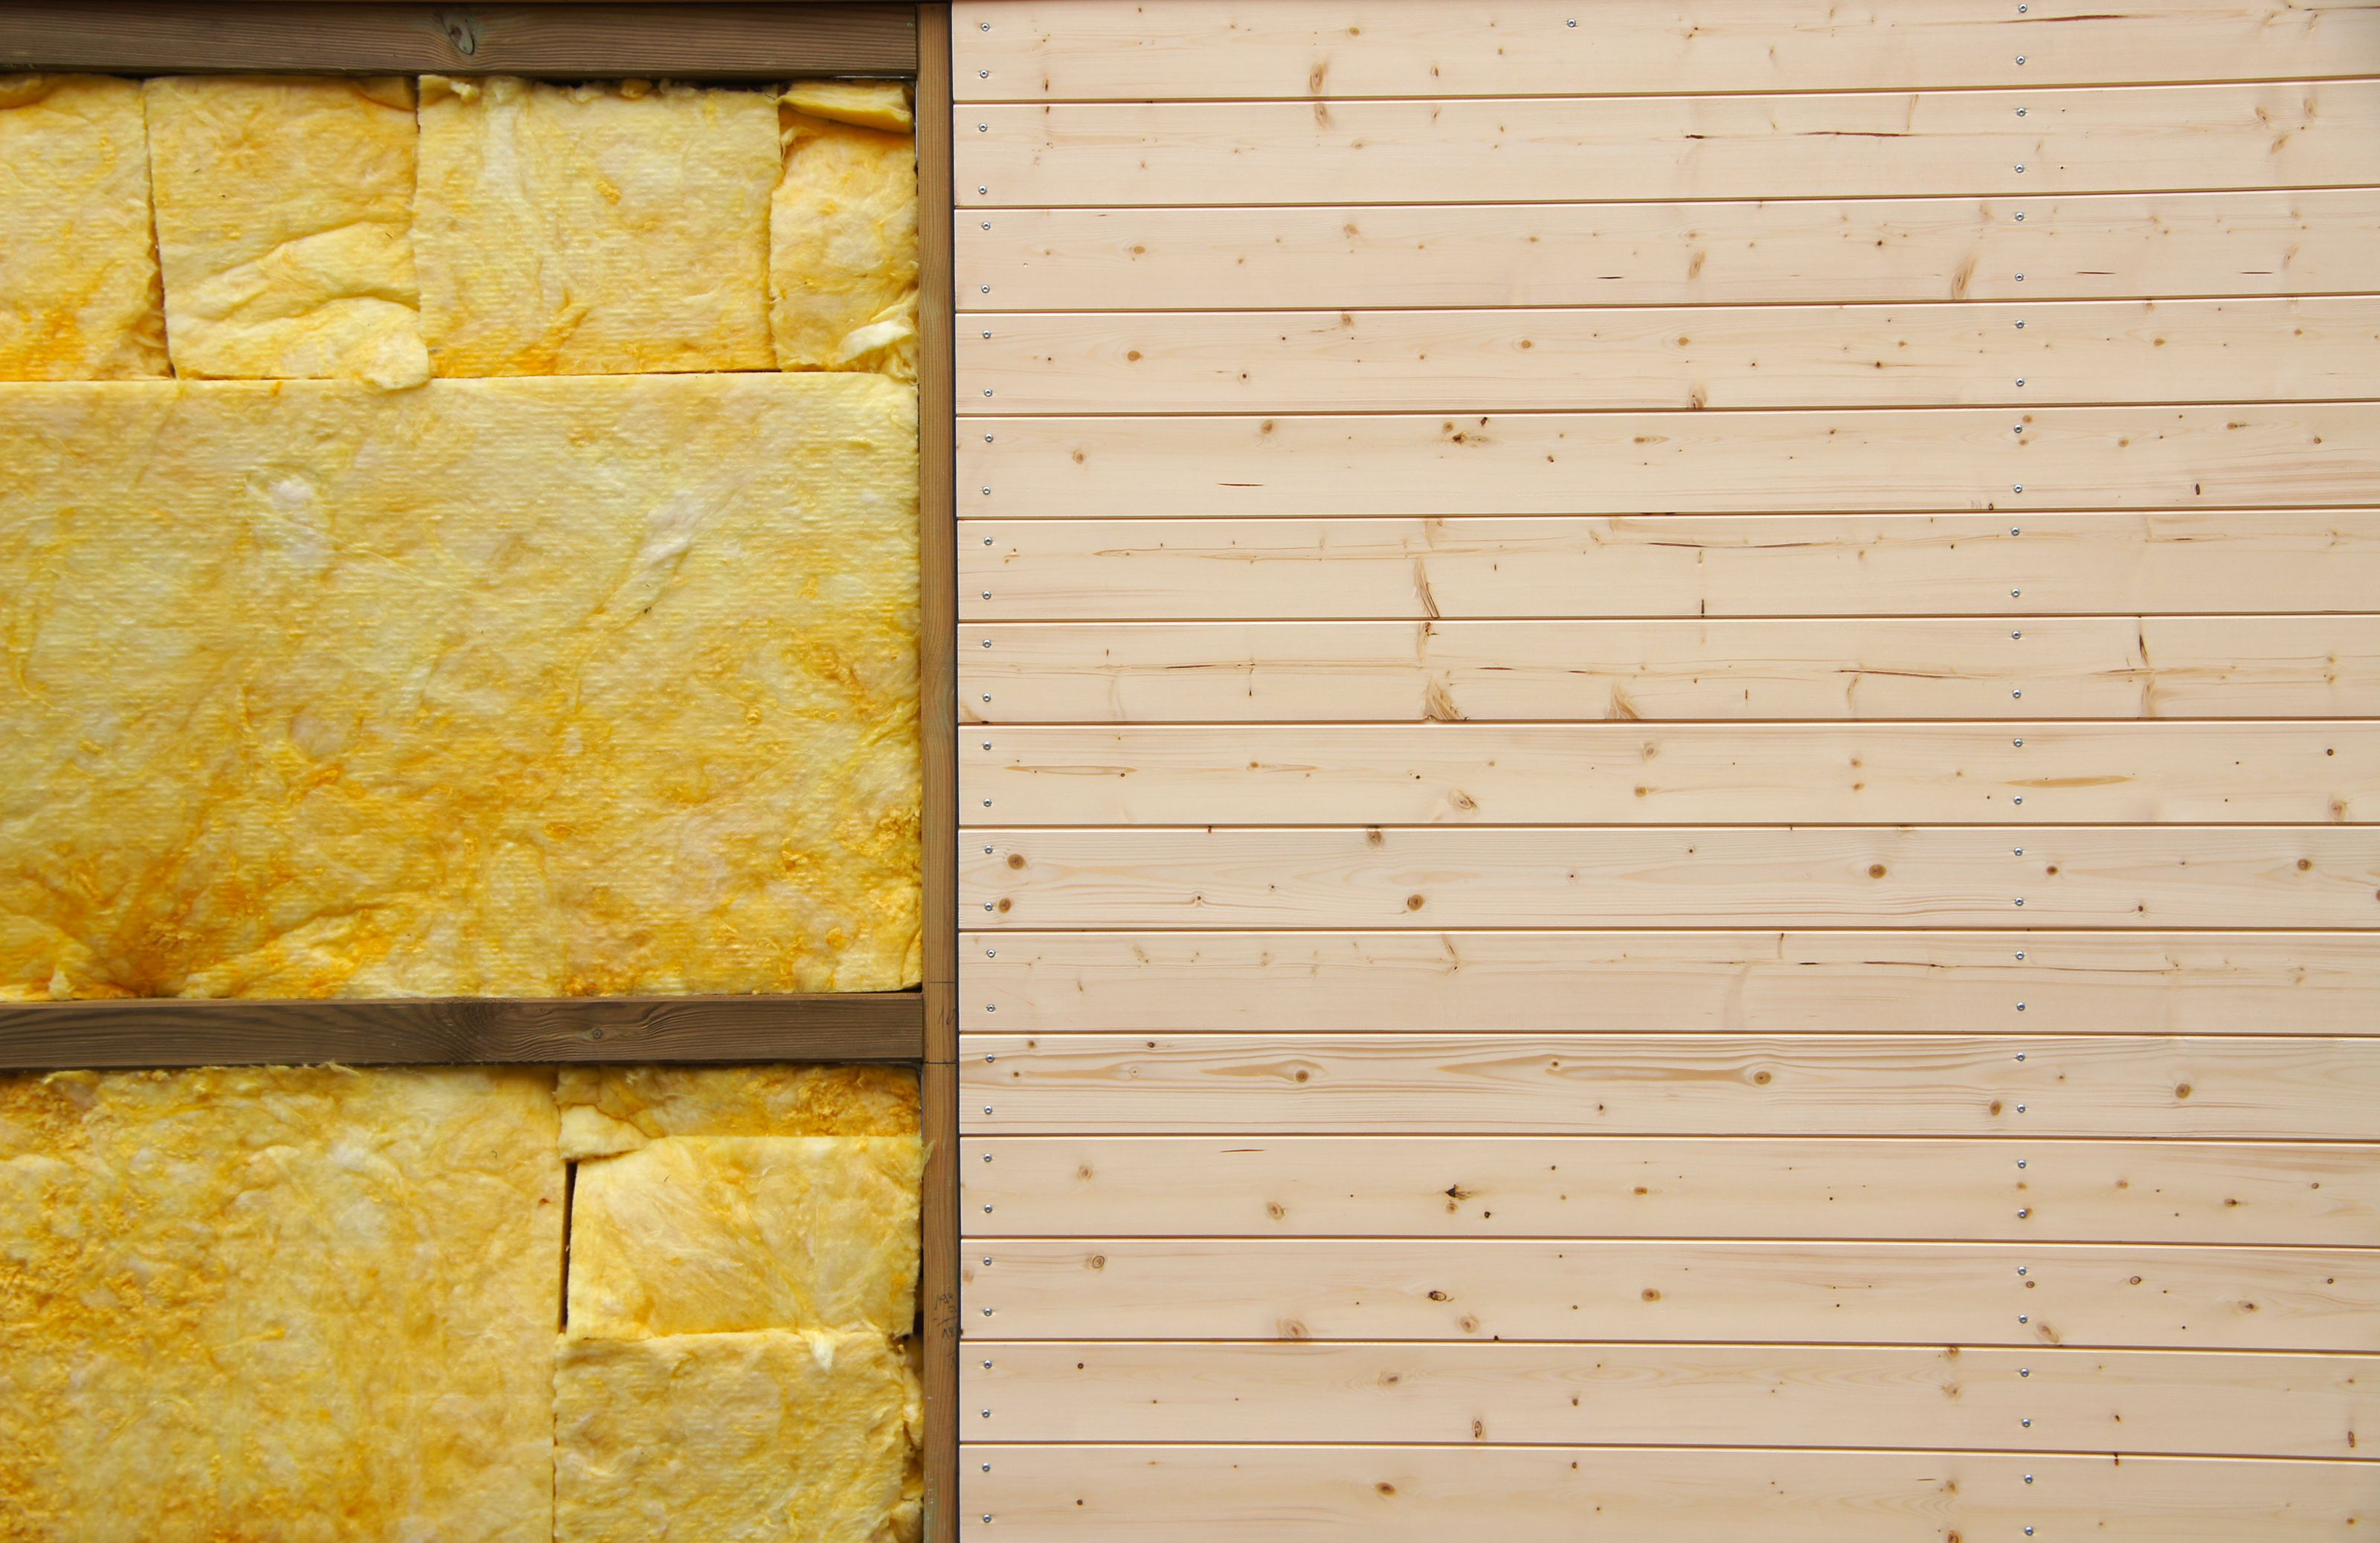 The Top 4 Ways to Insulate Closed Walls